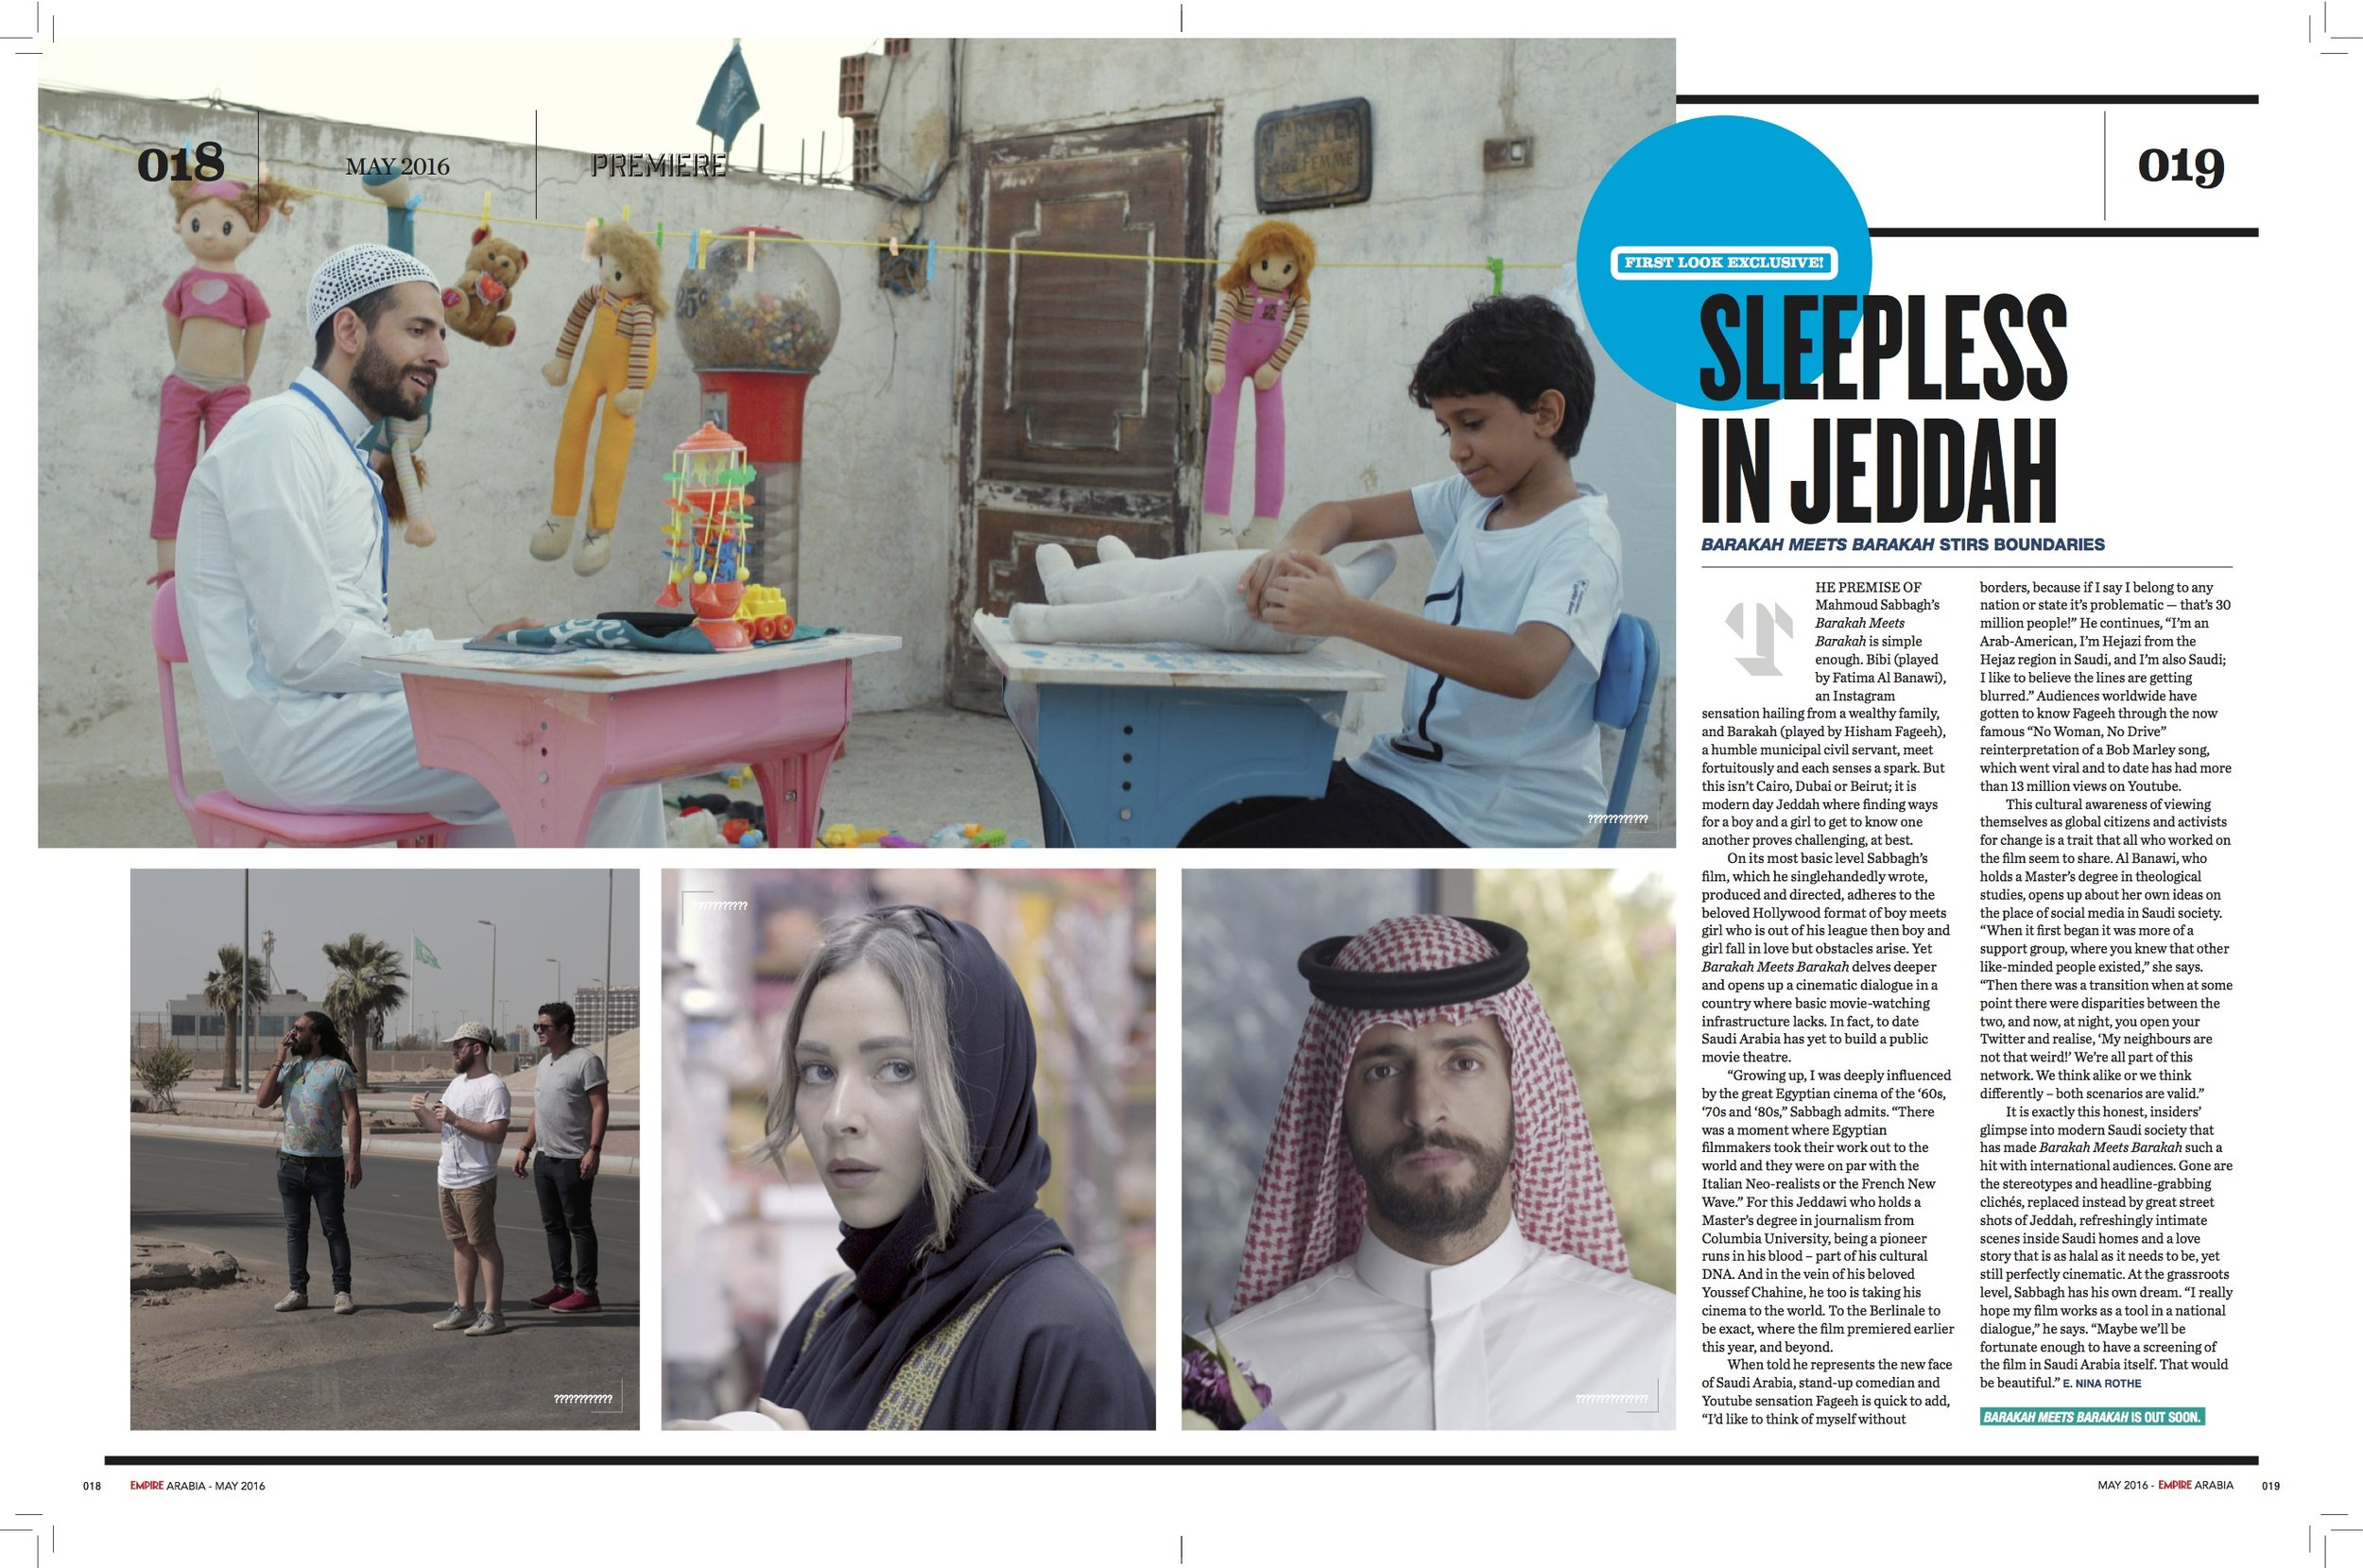 My feature on 'Barakah Meets Barakah' in Empire Arabia's May 2016 issue